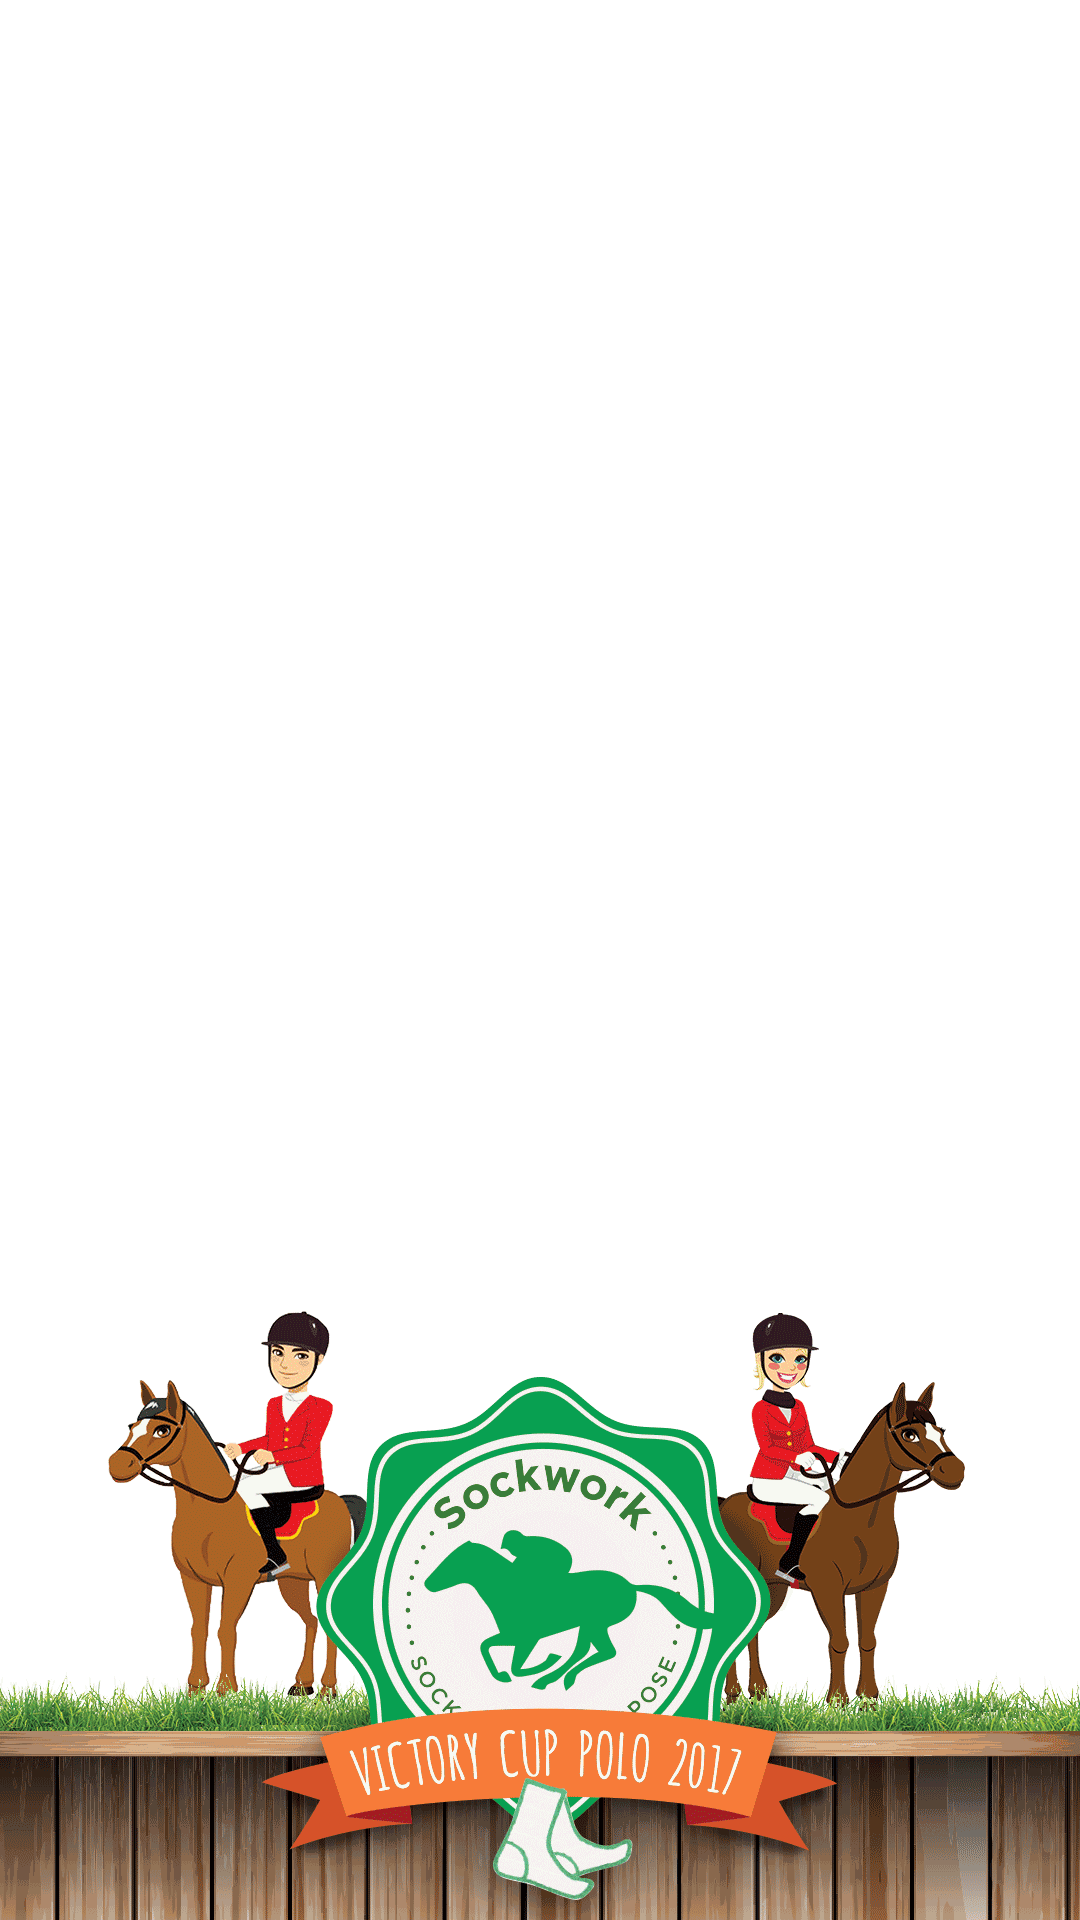 Lots of creative license on a fun whimsical Snapchat Geofilter for a cool fashion subscription site